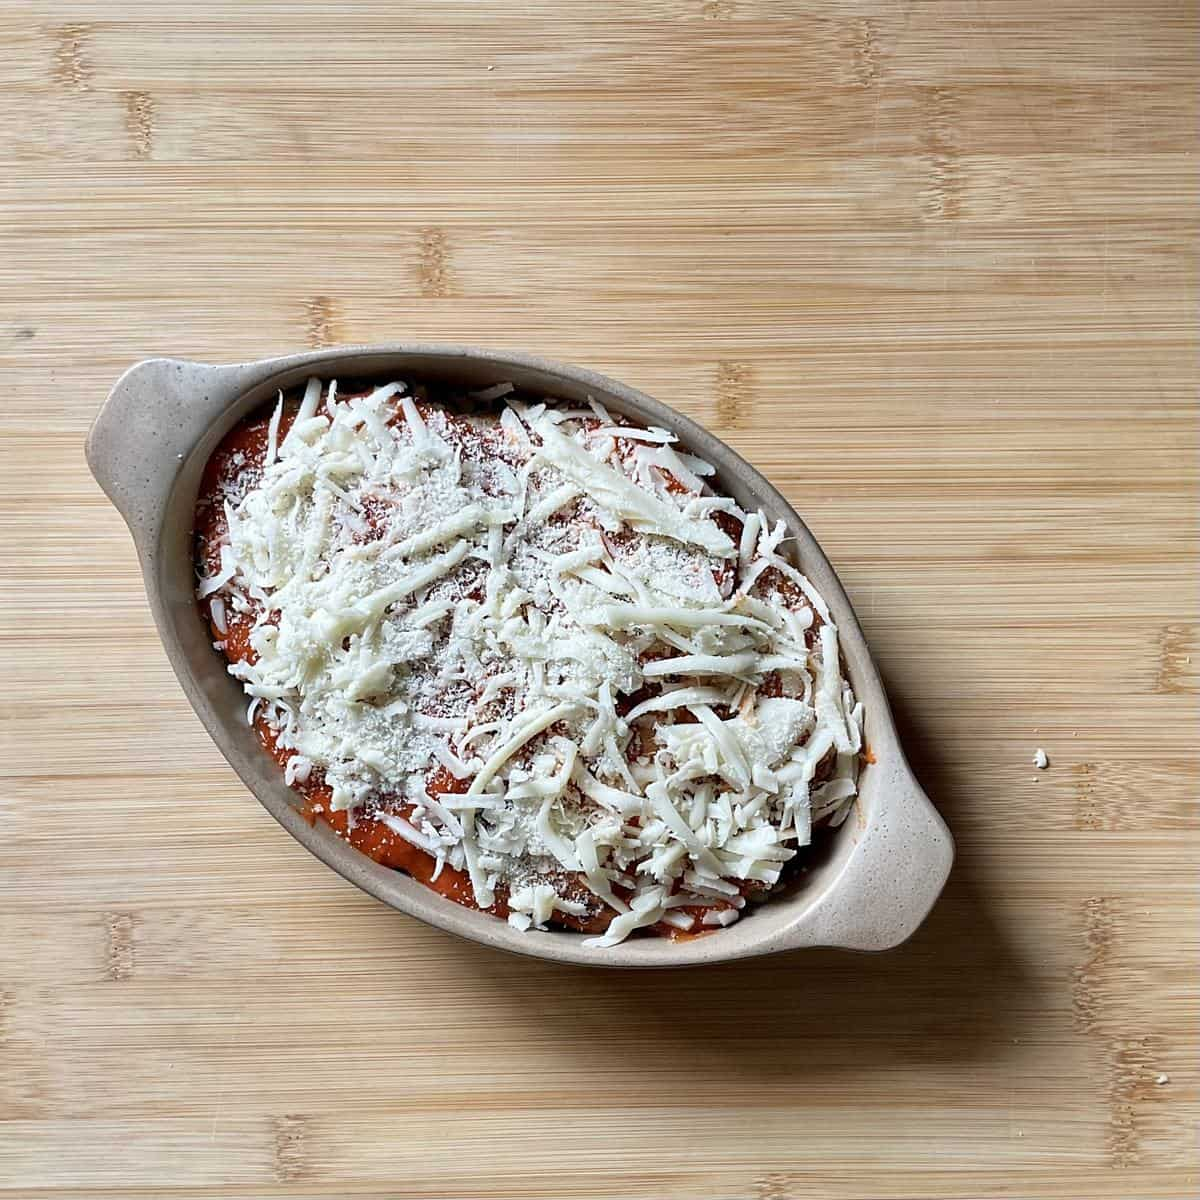 The top layer of eggplant is garnished with grated mozzarella.